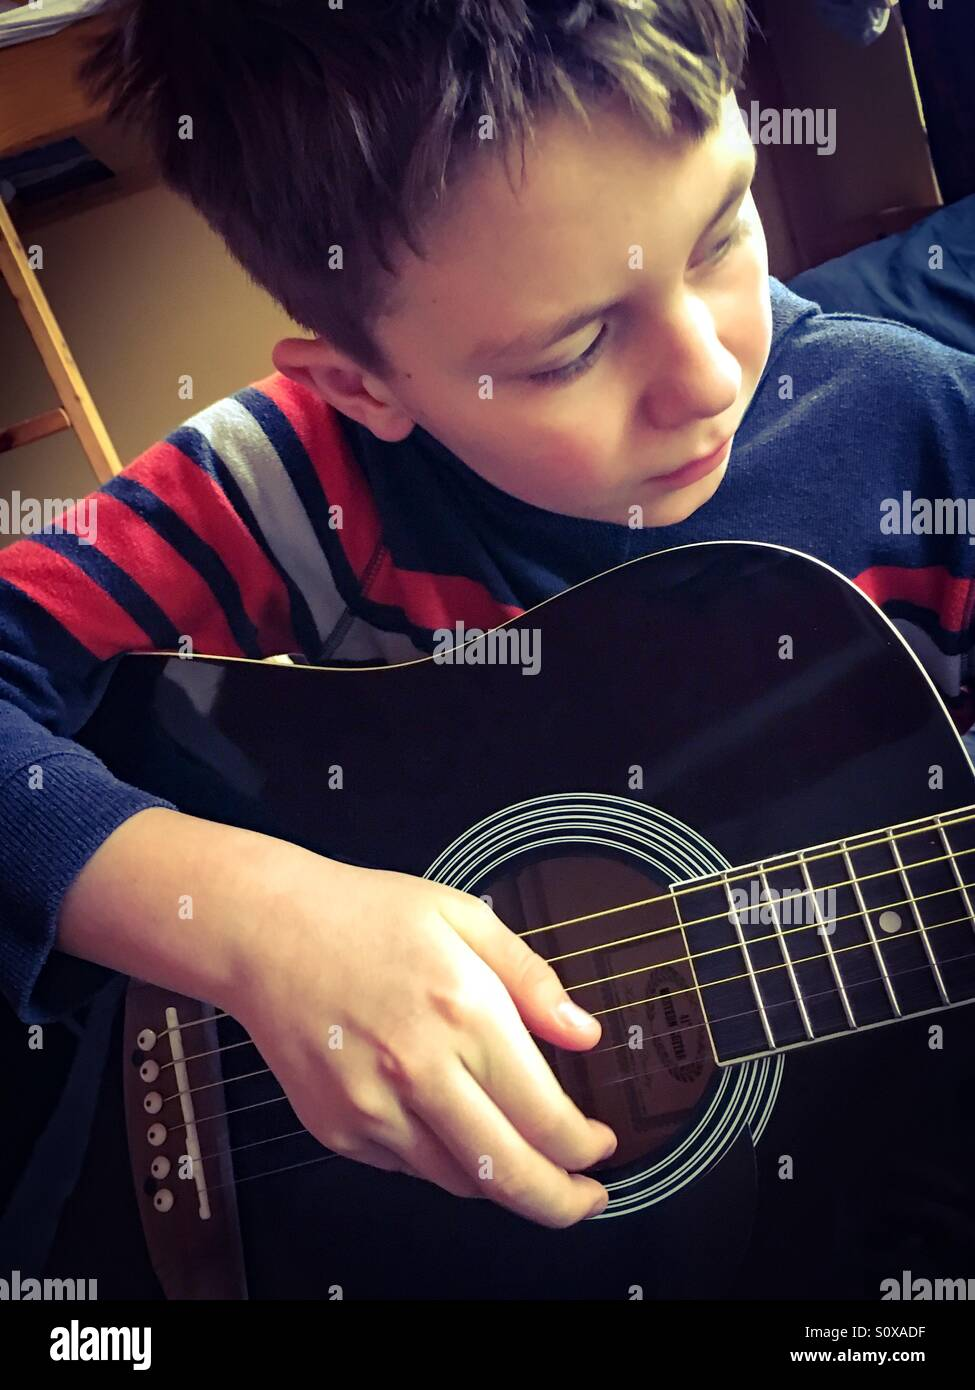 11 year old boy playing his guitar in the morning - Stock Image